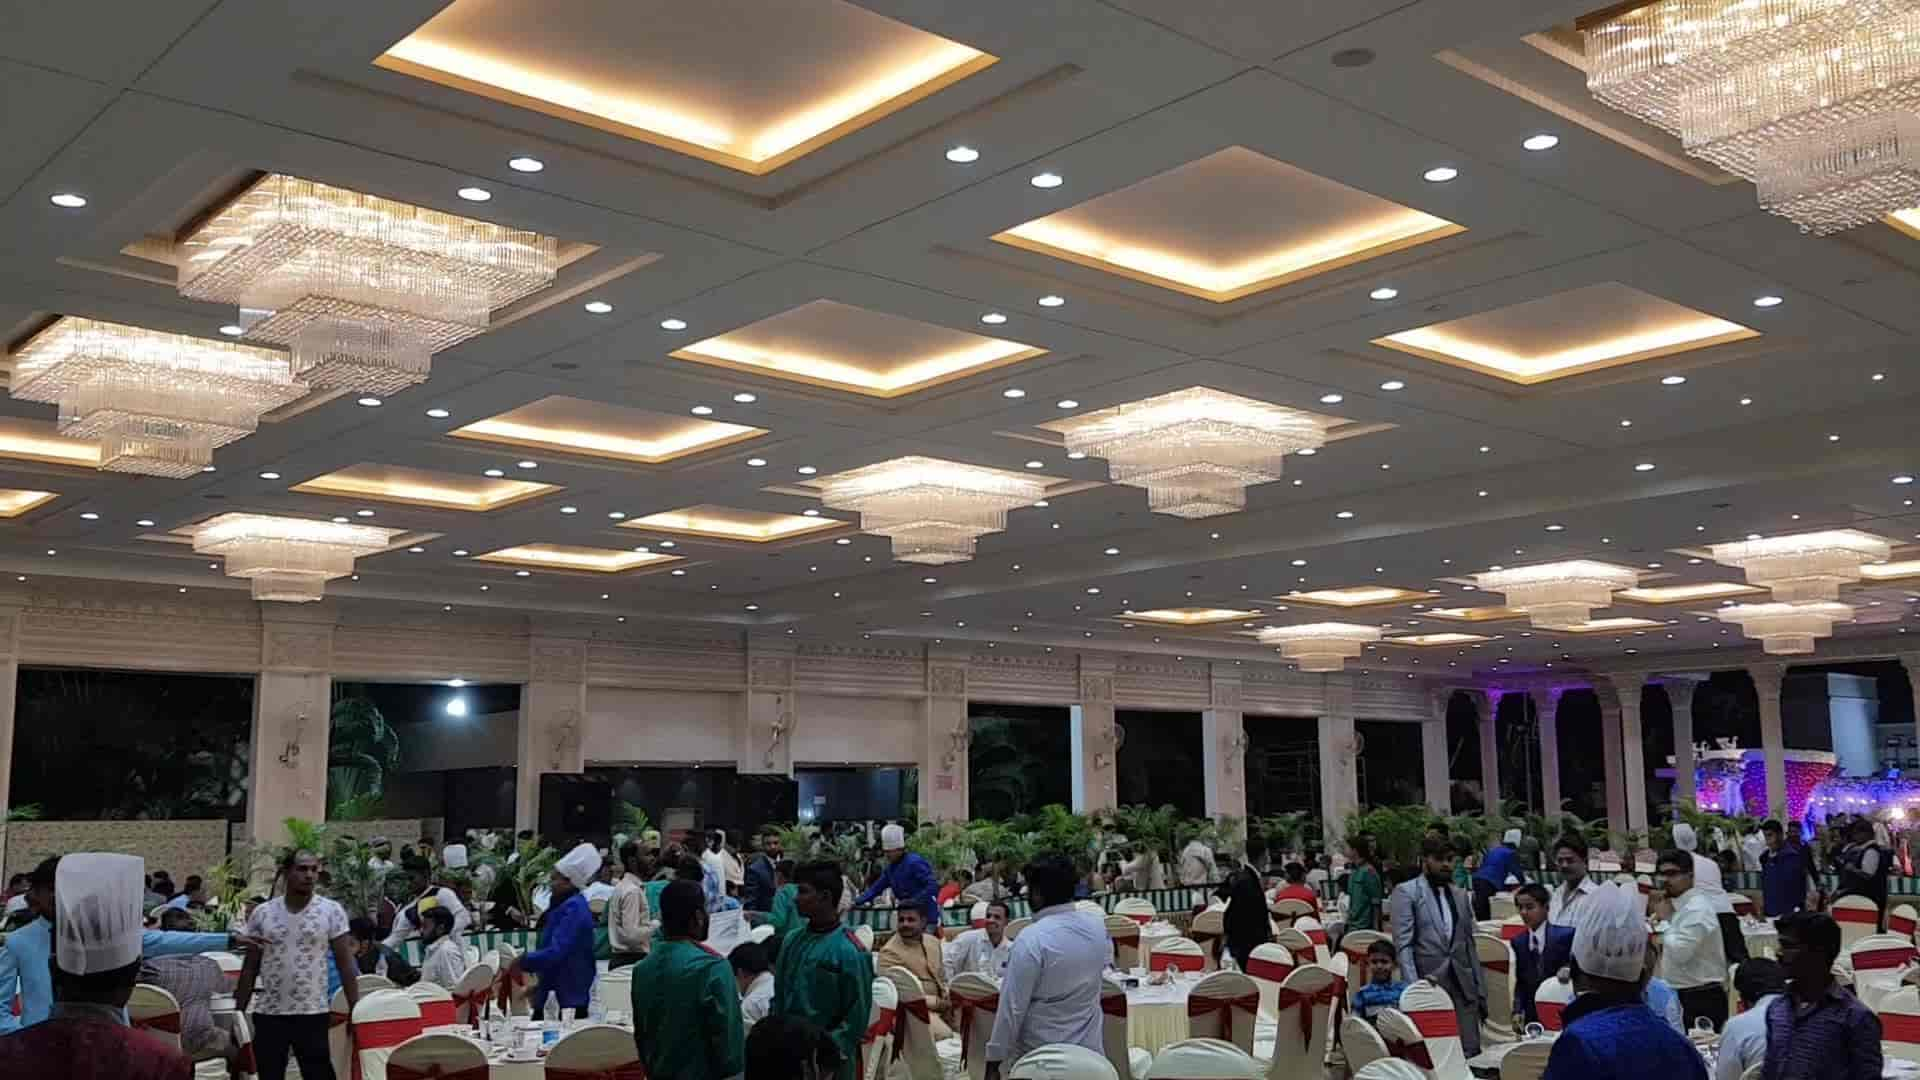 Kings Palace Function Hall Mehdipatnam Banquet Halls In Hyderabad Justdial